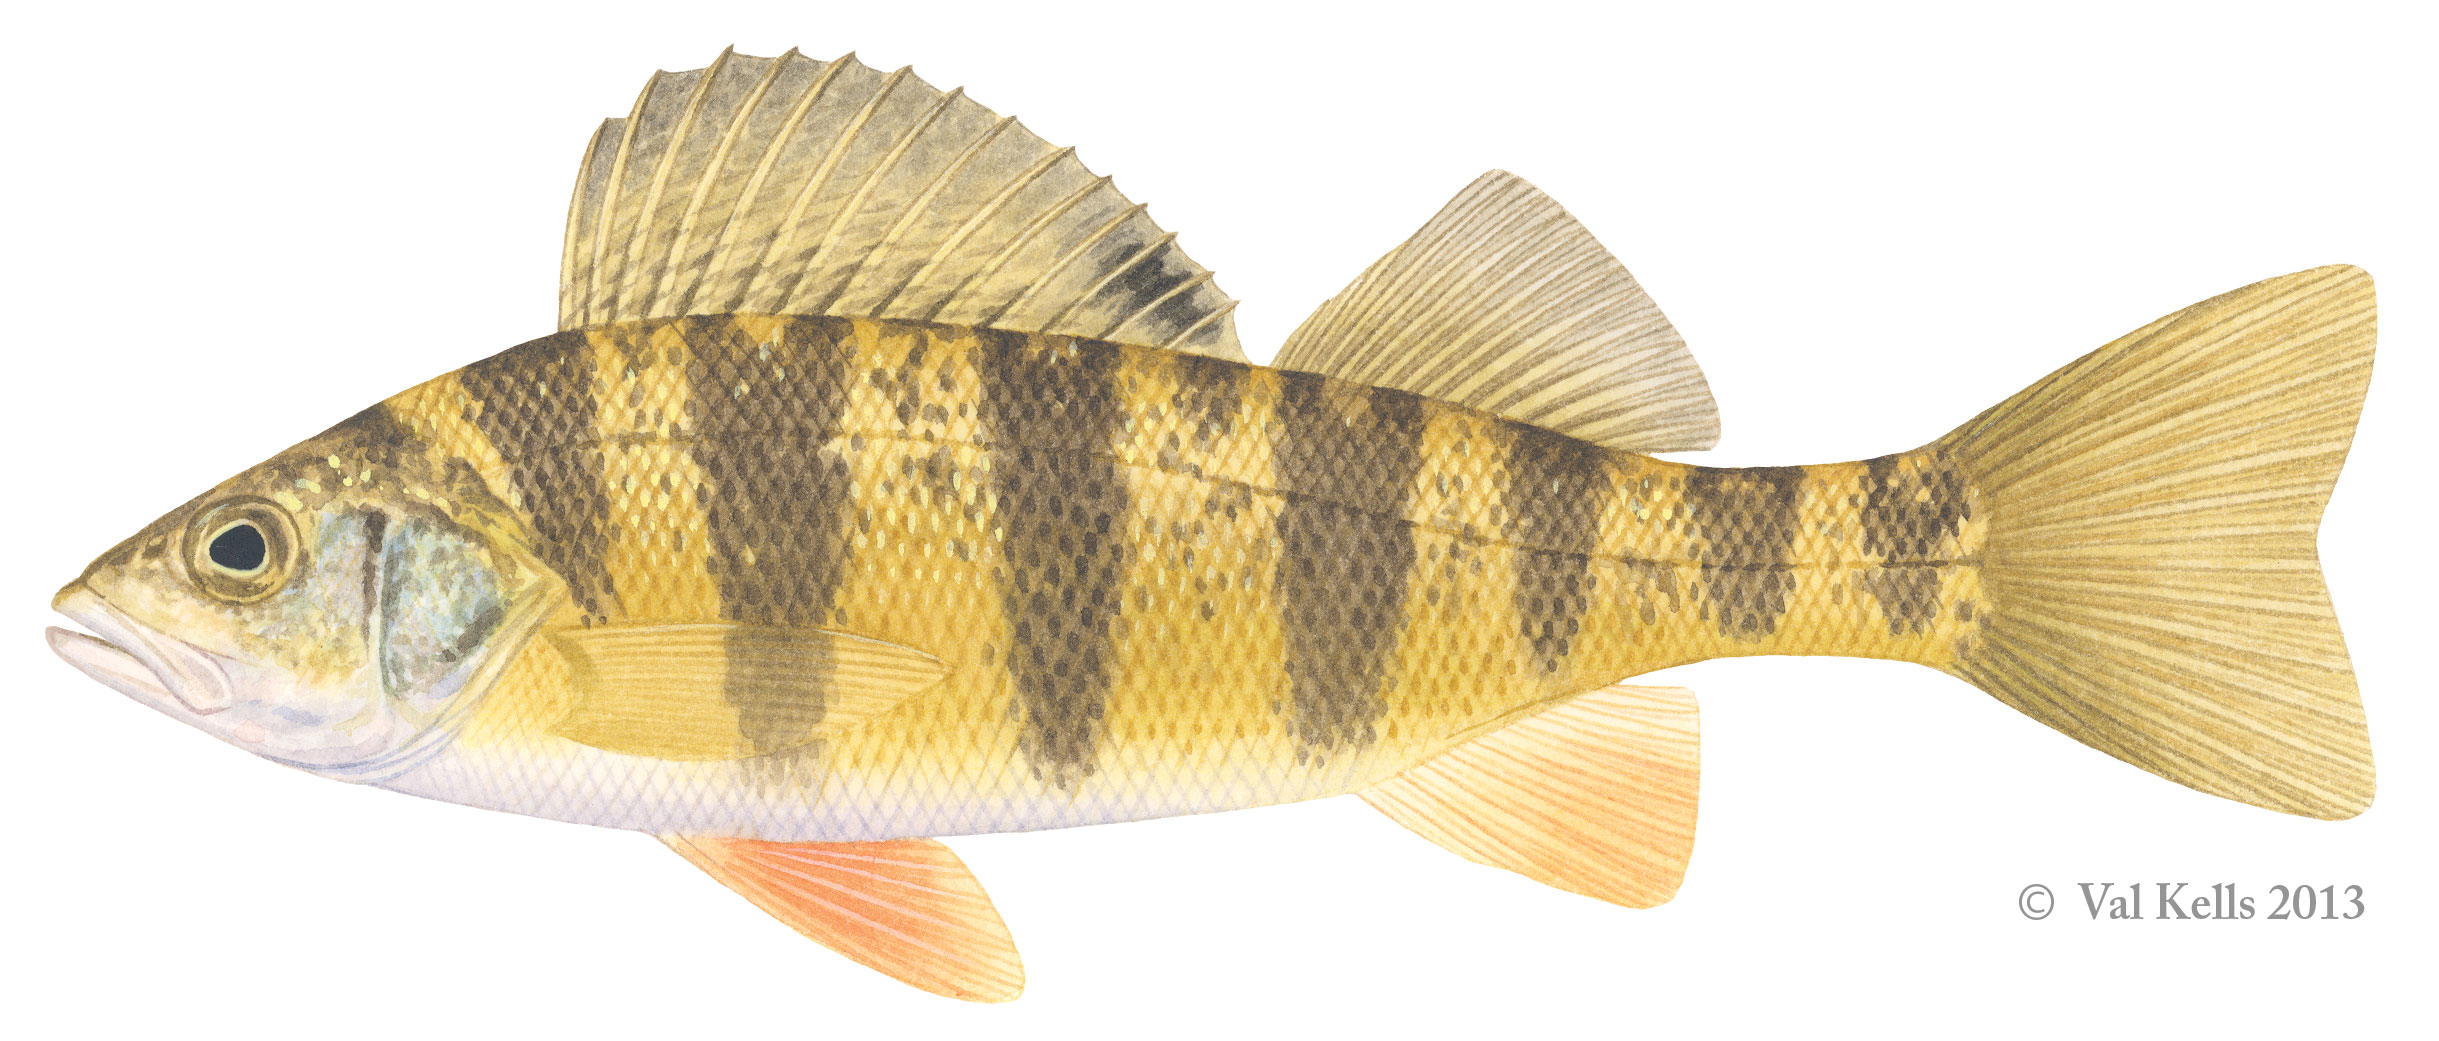 Wild thing q a with the authors of field guide to fishes for Perch fish facts